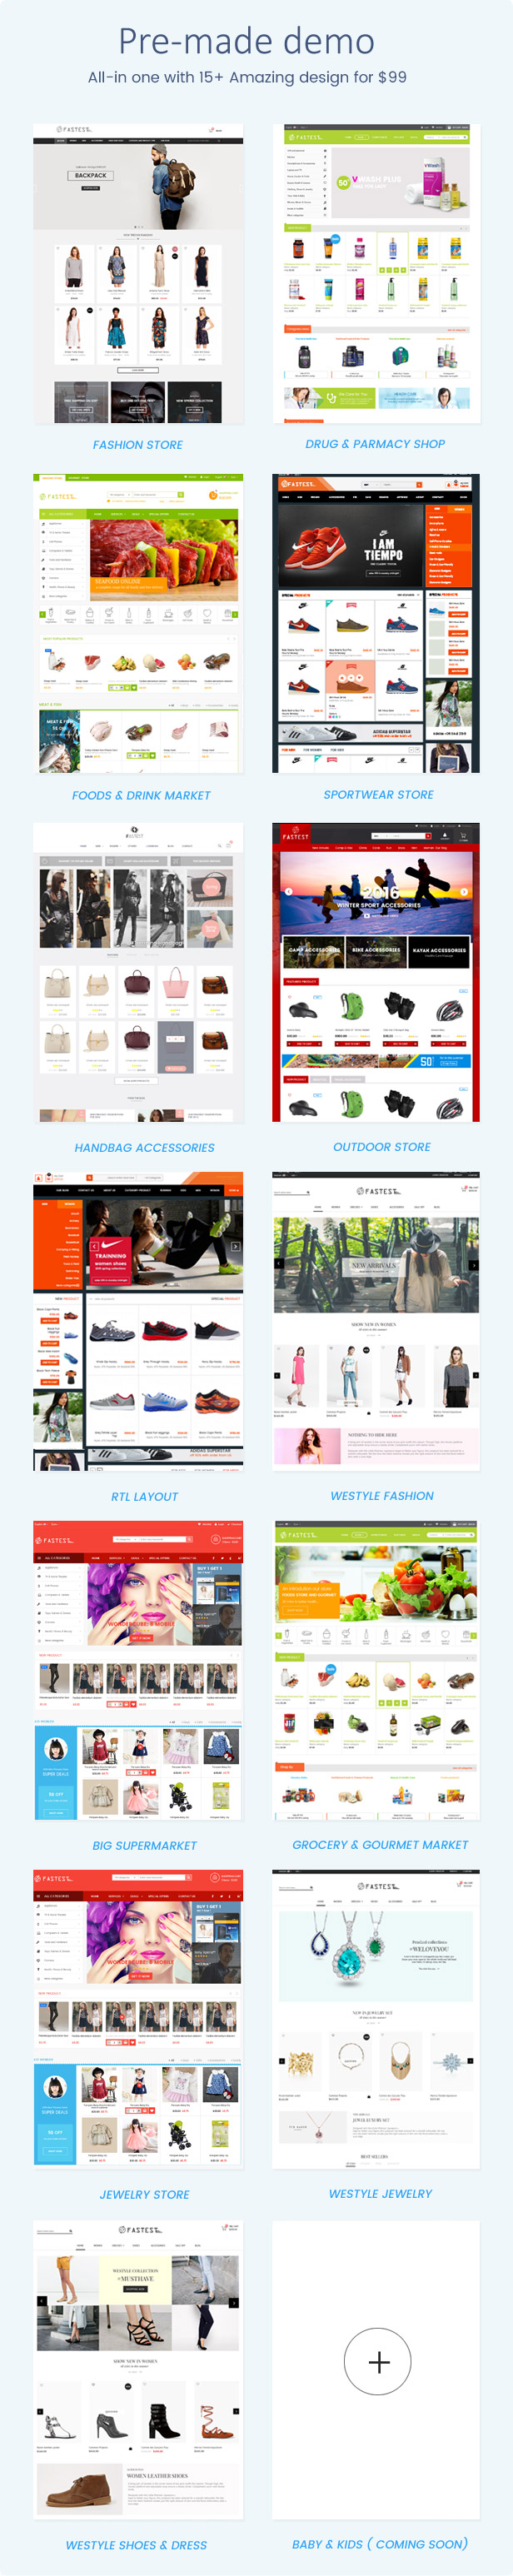 Fastest - Magento 2.2.2 themes & Magento 1. Multipurpose Responsive Theme (16 Home) Shopping,Fashion